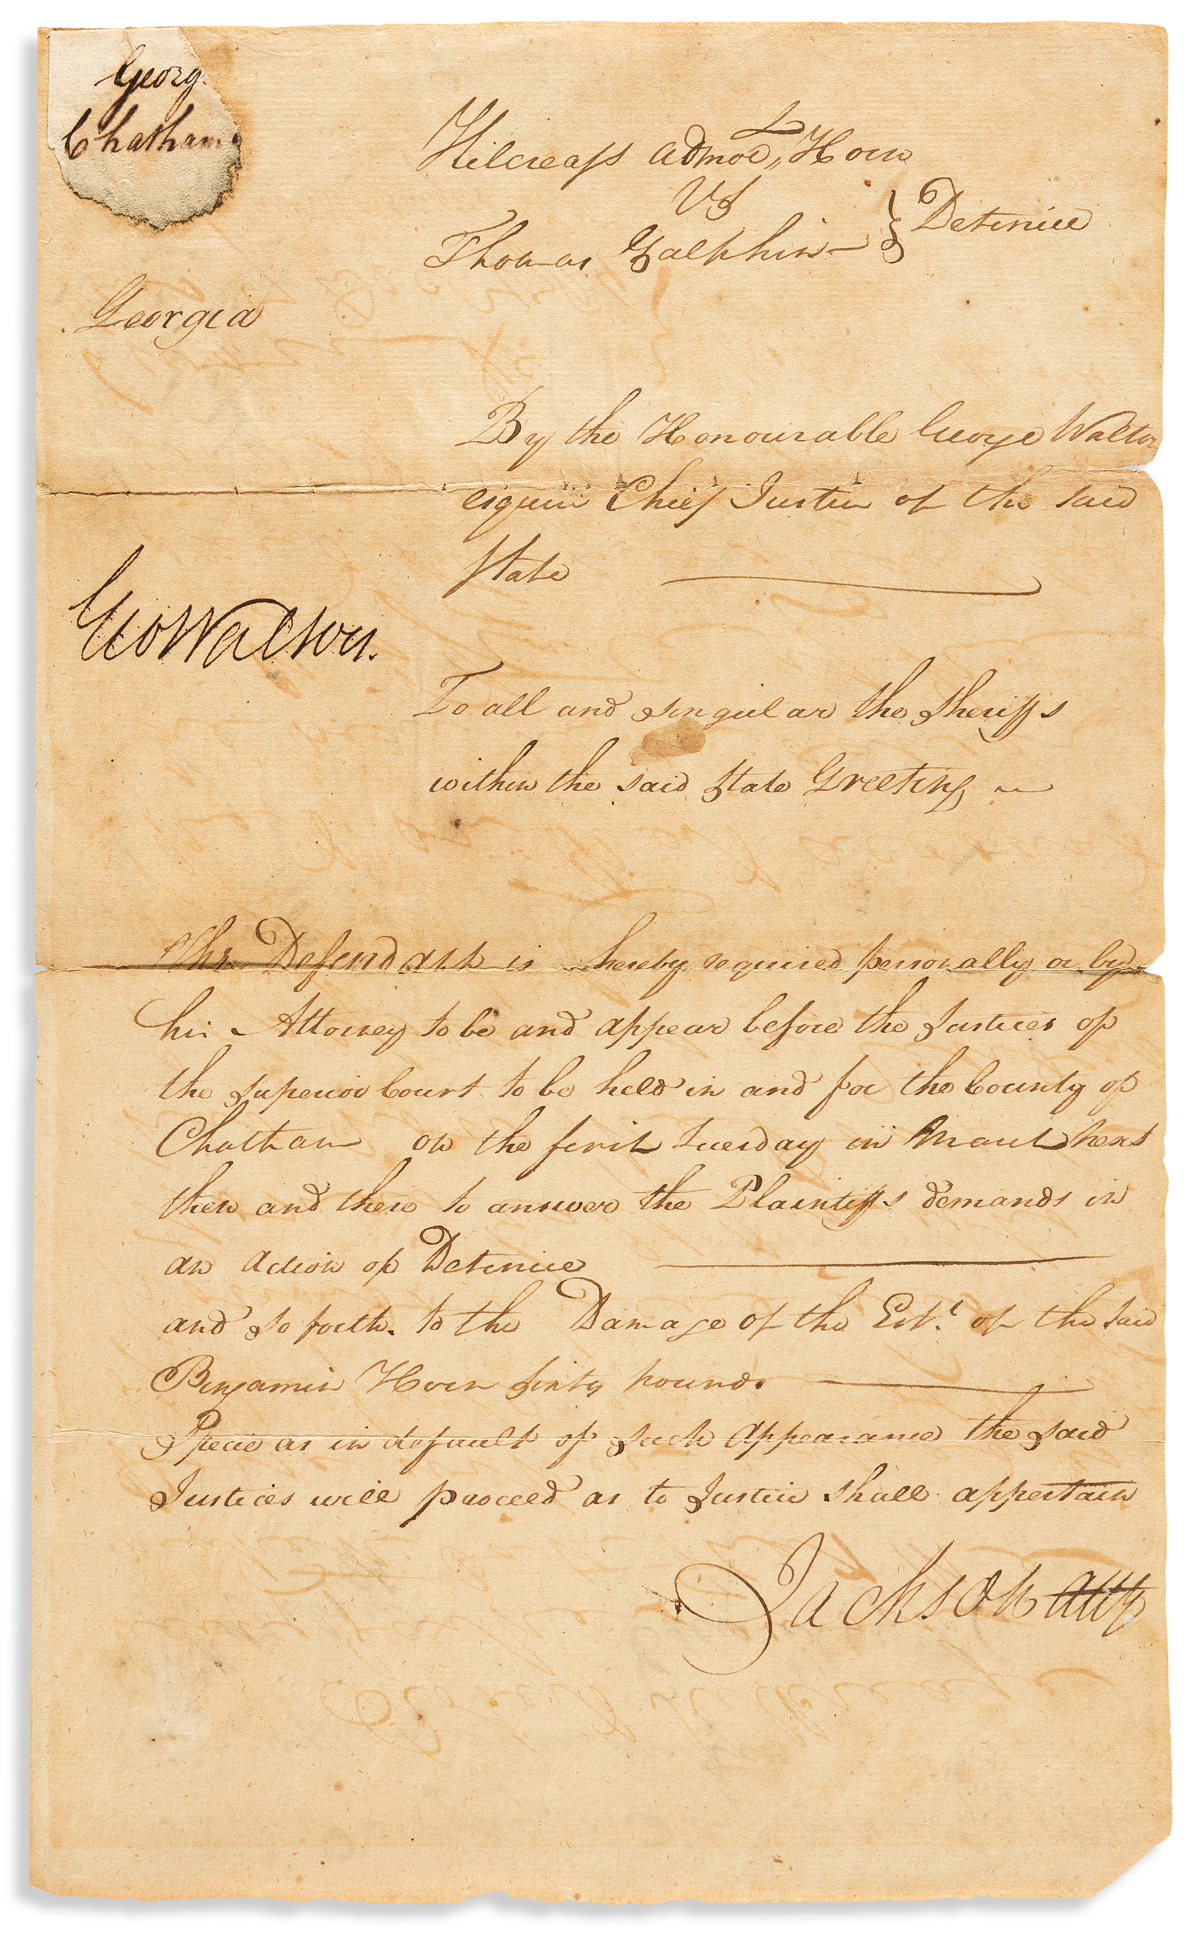 WALTON, GEORGE. Document Signed, GeoWalton, as GA Chief Justice, a warrant ordering the appearance of Thomas Galphin before the Super